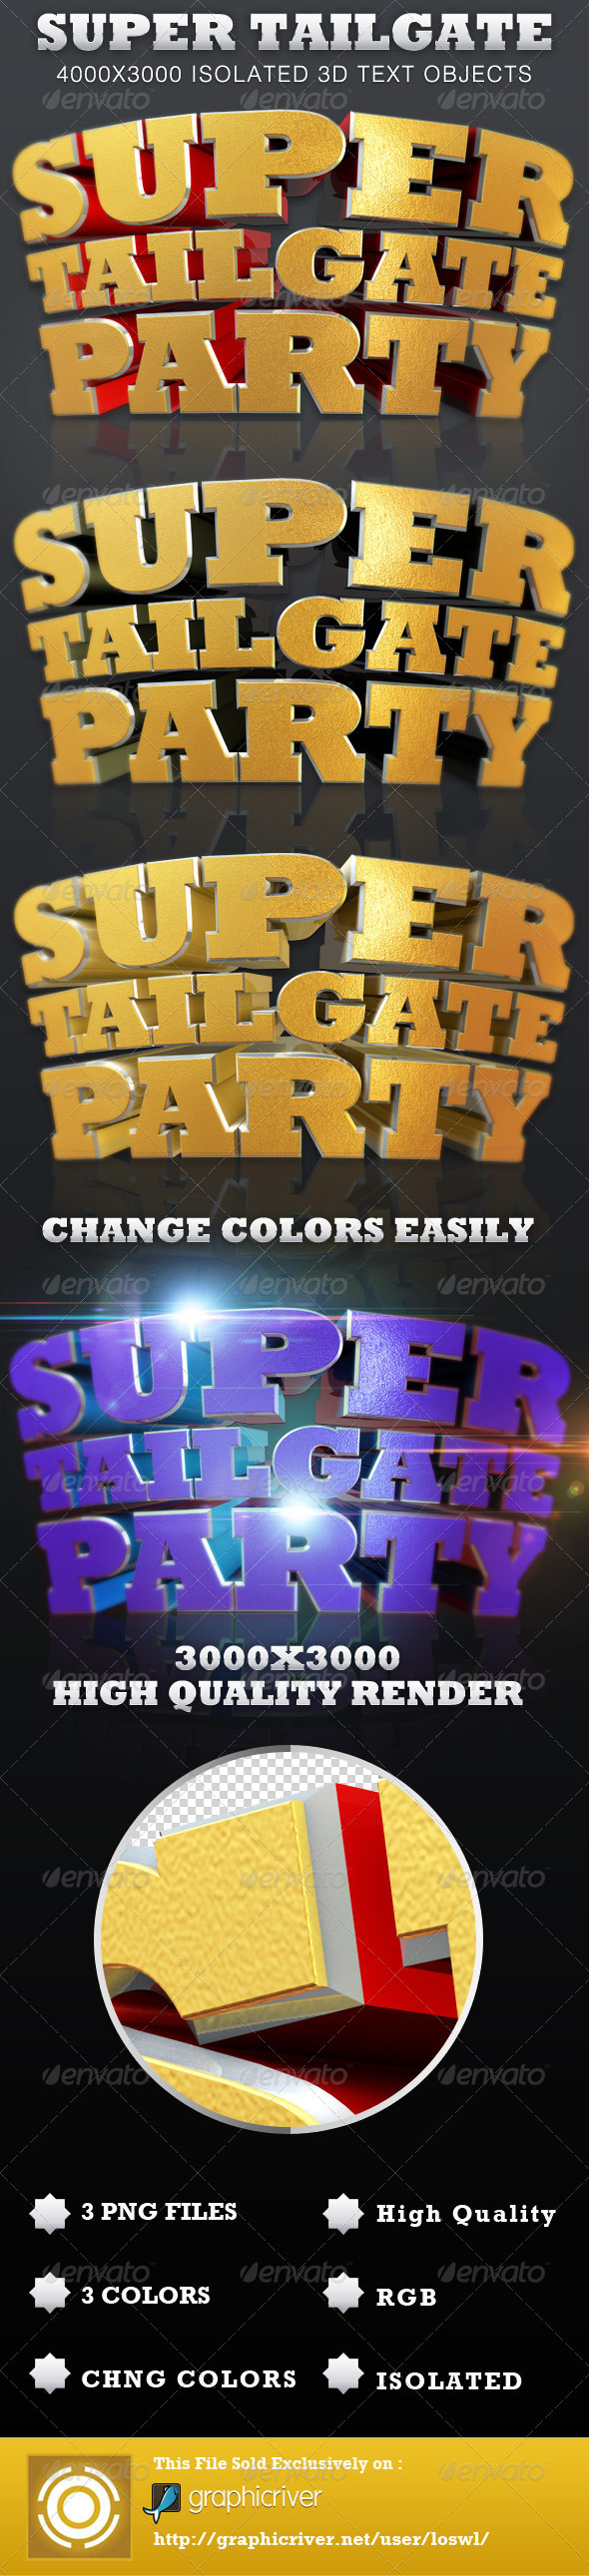 Super Tailgate Party Isolated 3D Text Objects - Text 3D Renders